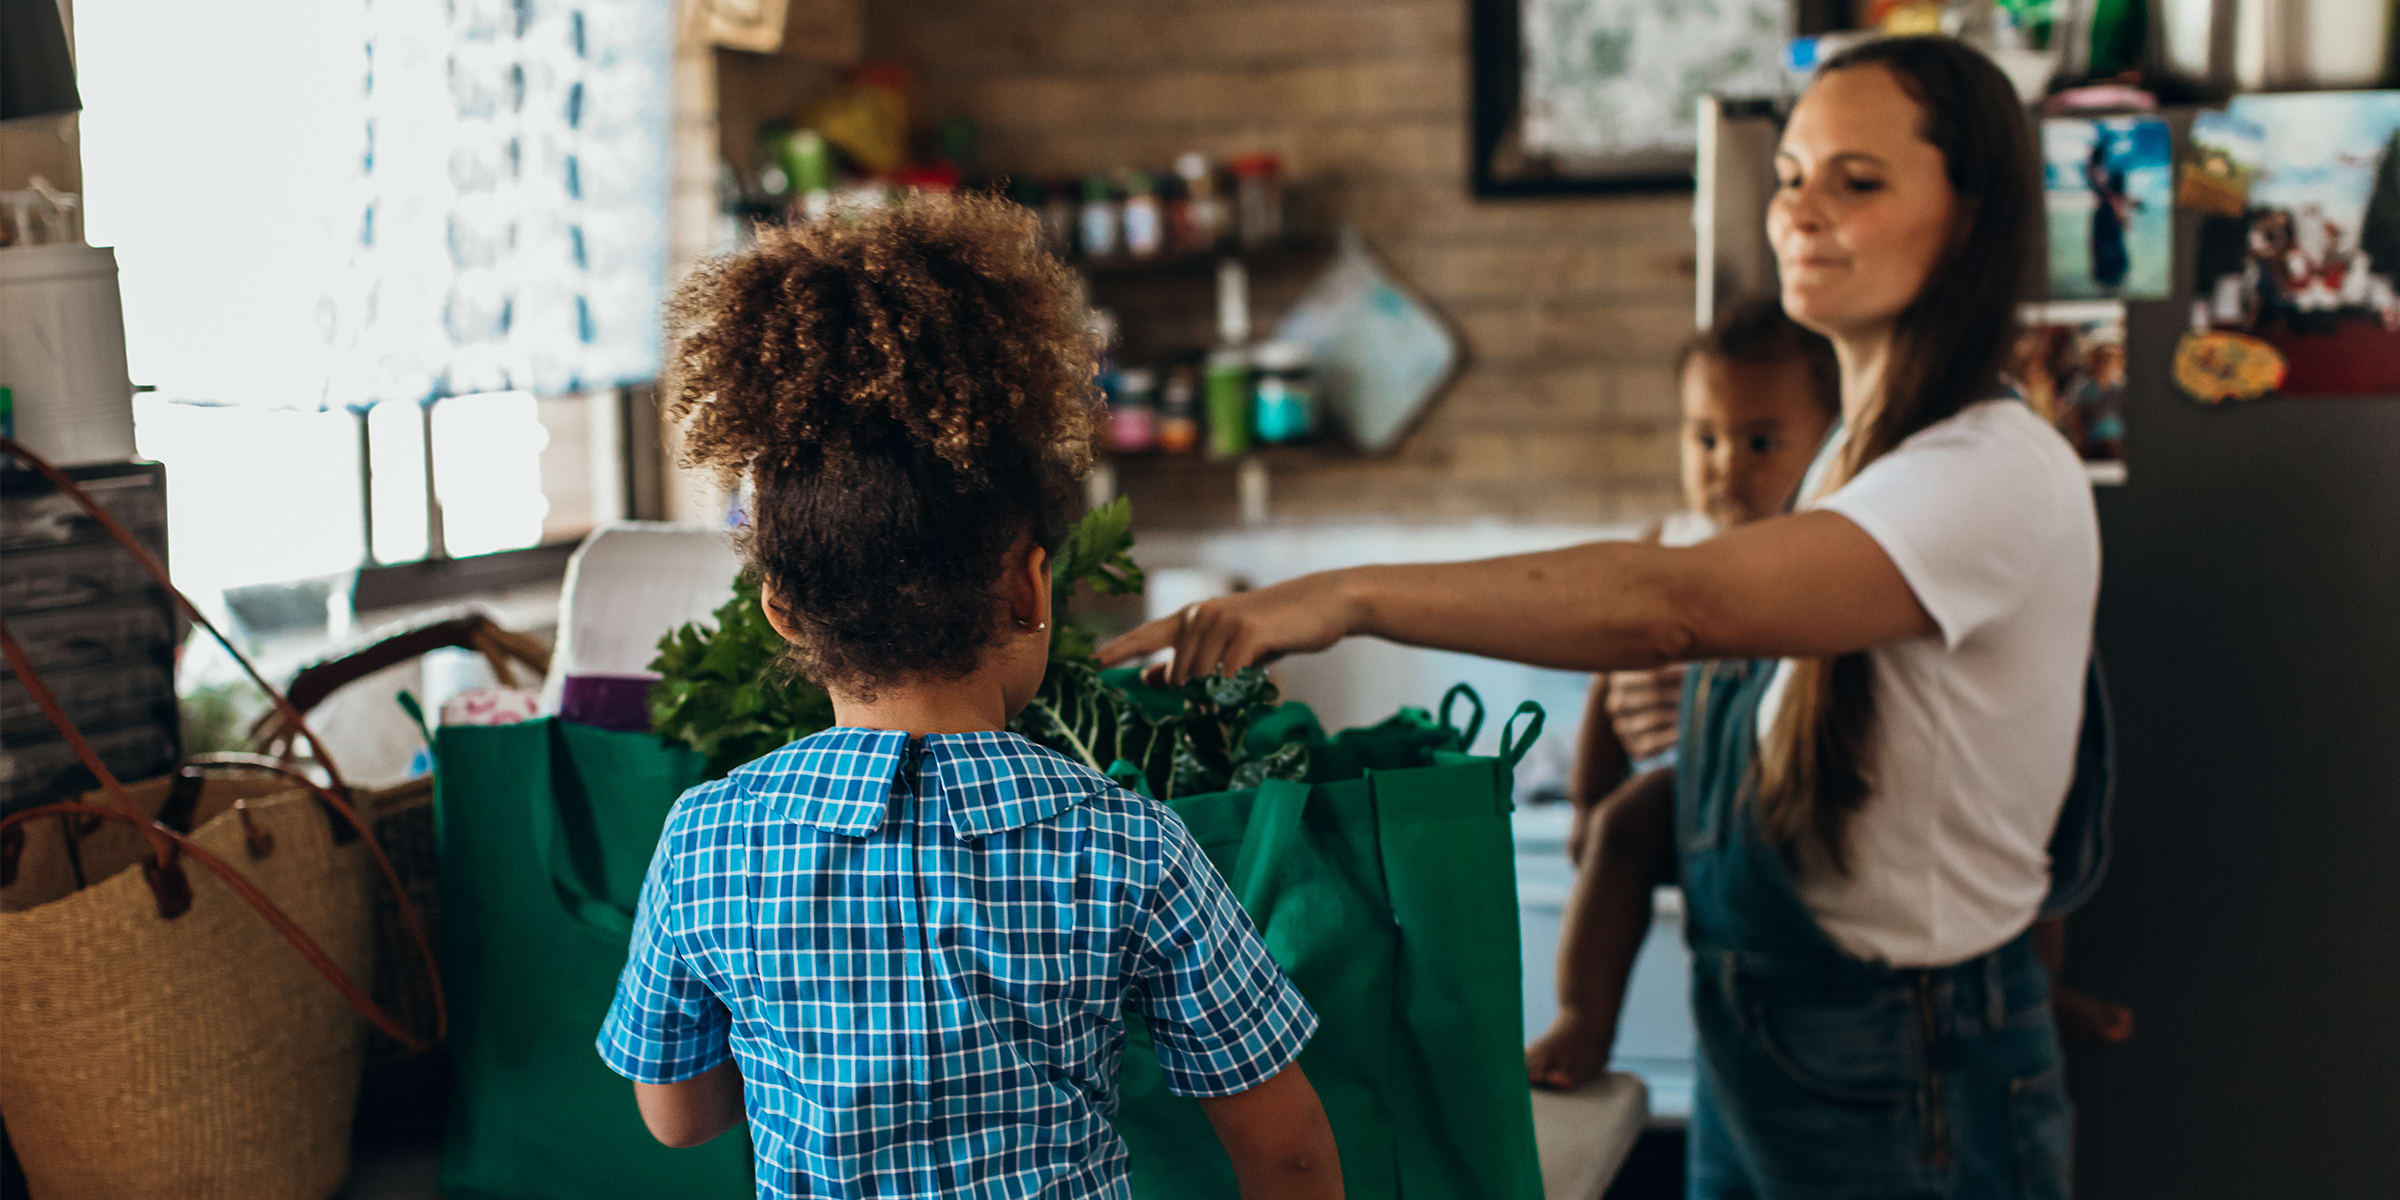 Sustainability tips: A woman buying groceries locally